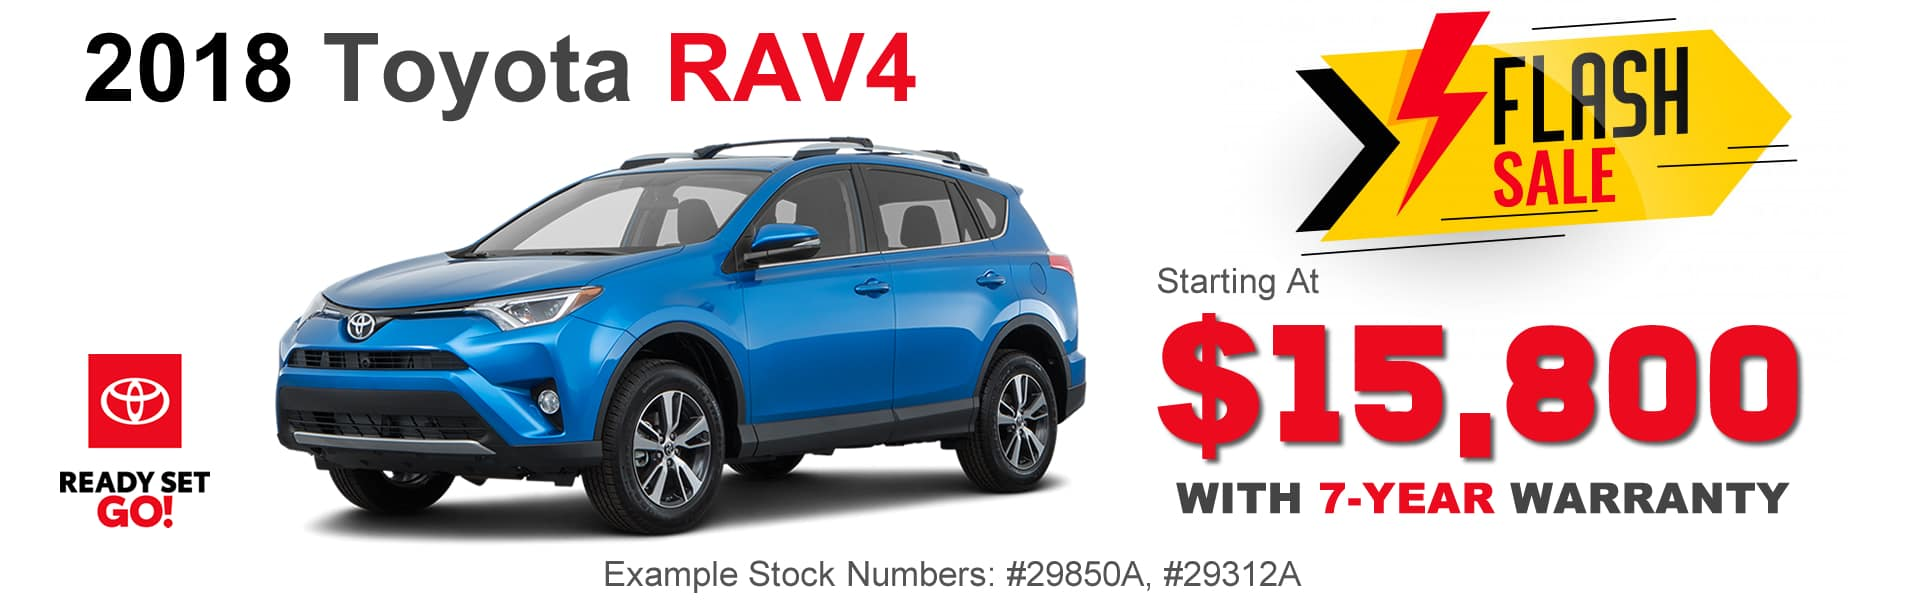 March-2021-Toyota-RAV4-Flash-Sale-V2